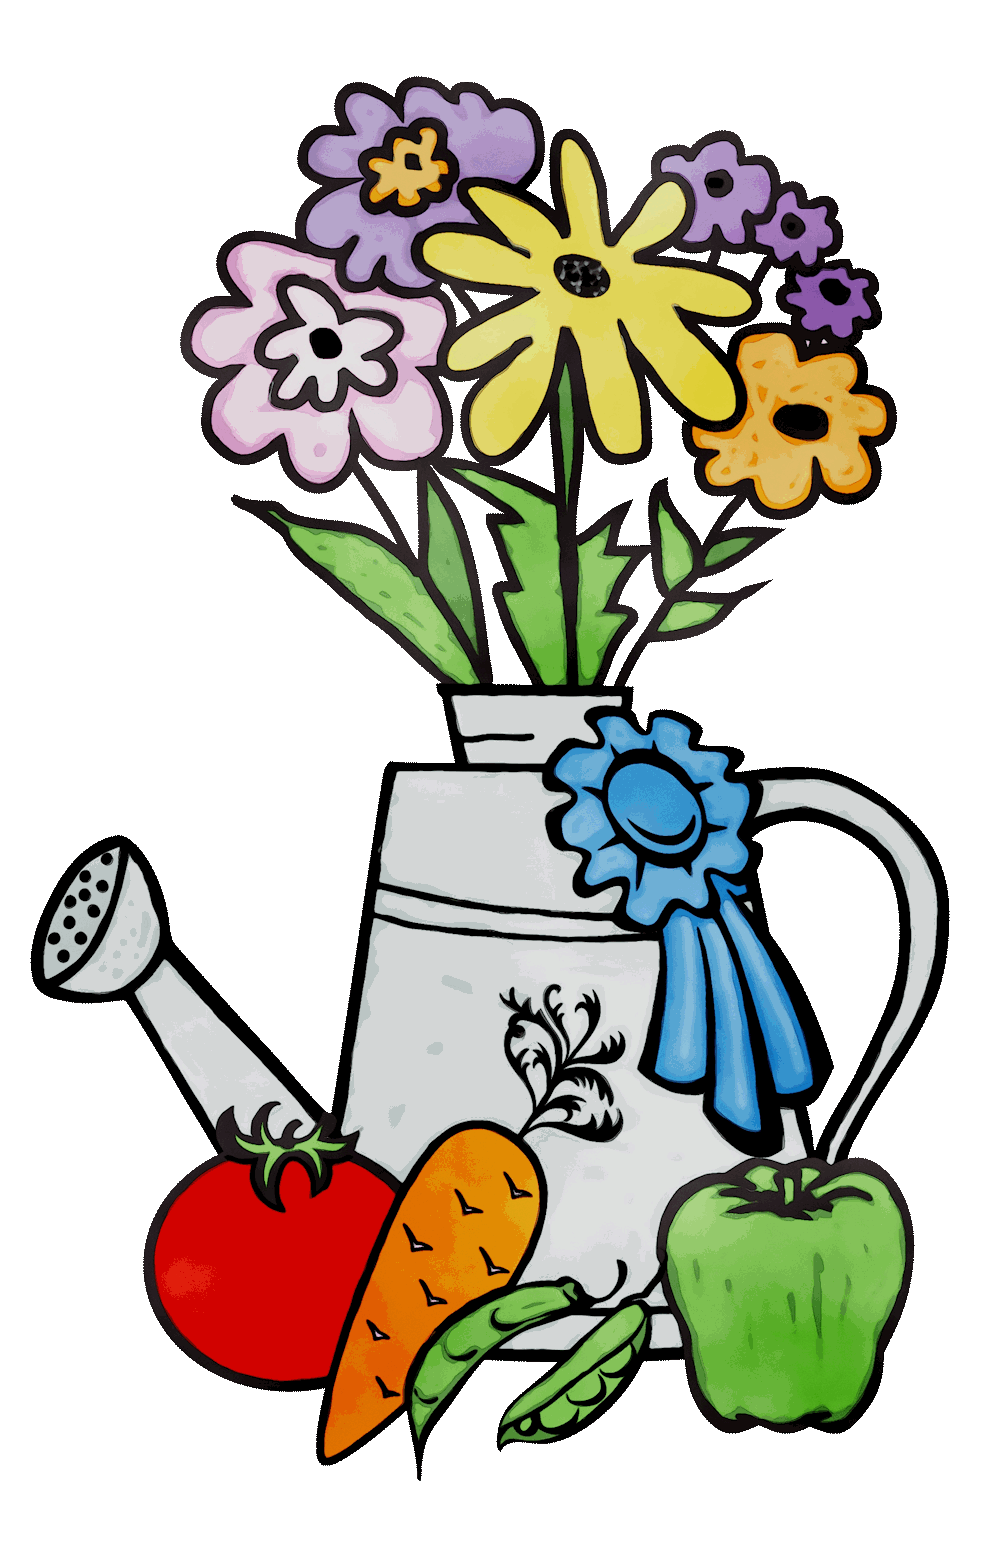 Horticultural clipart. Flowers, watering can, vegetables etc.